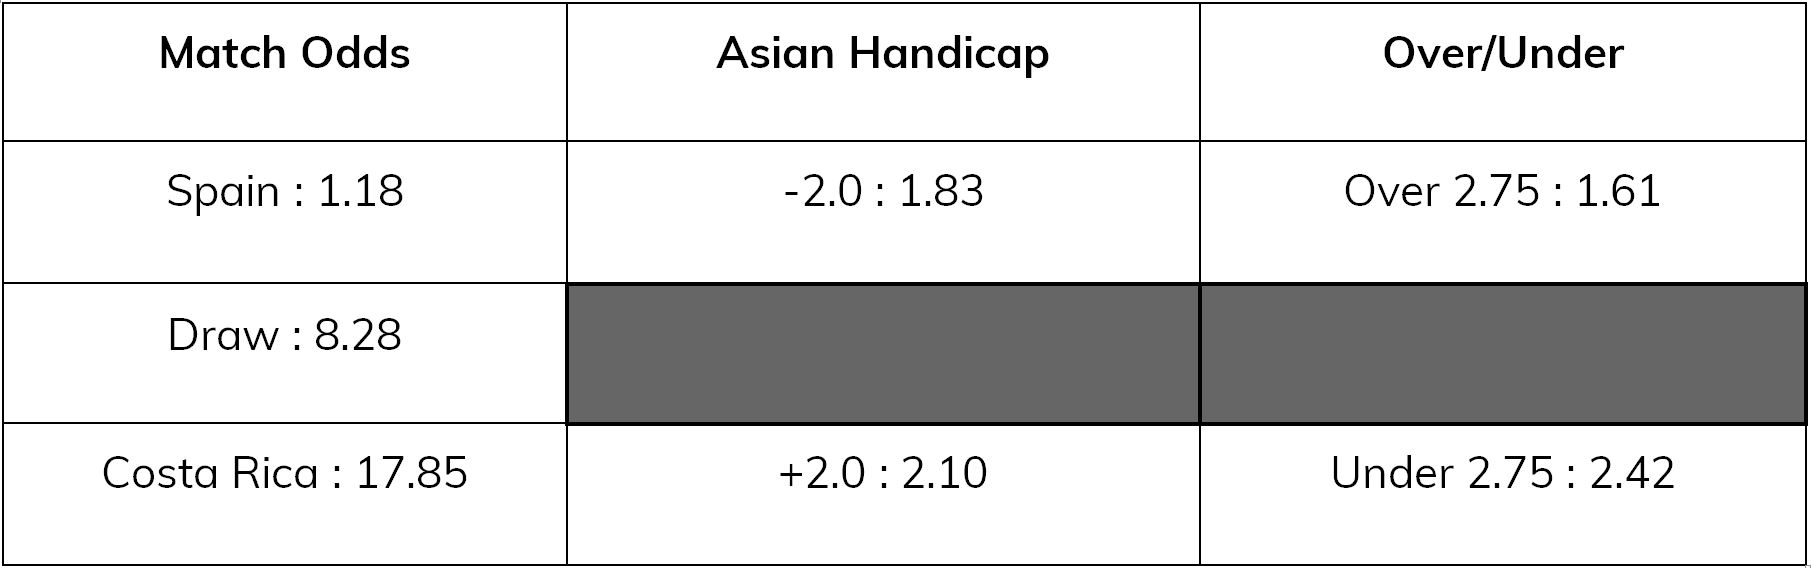 brazil-v-costa-rica-asian-handicap-eastbridge5